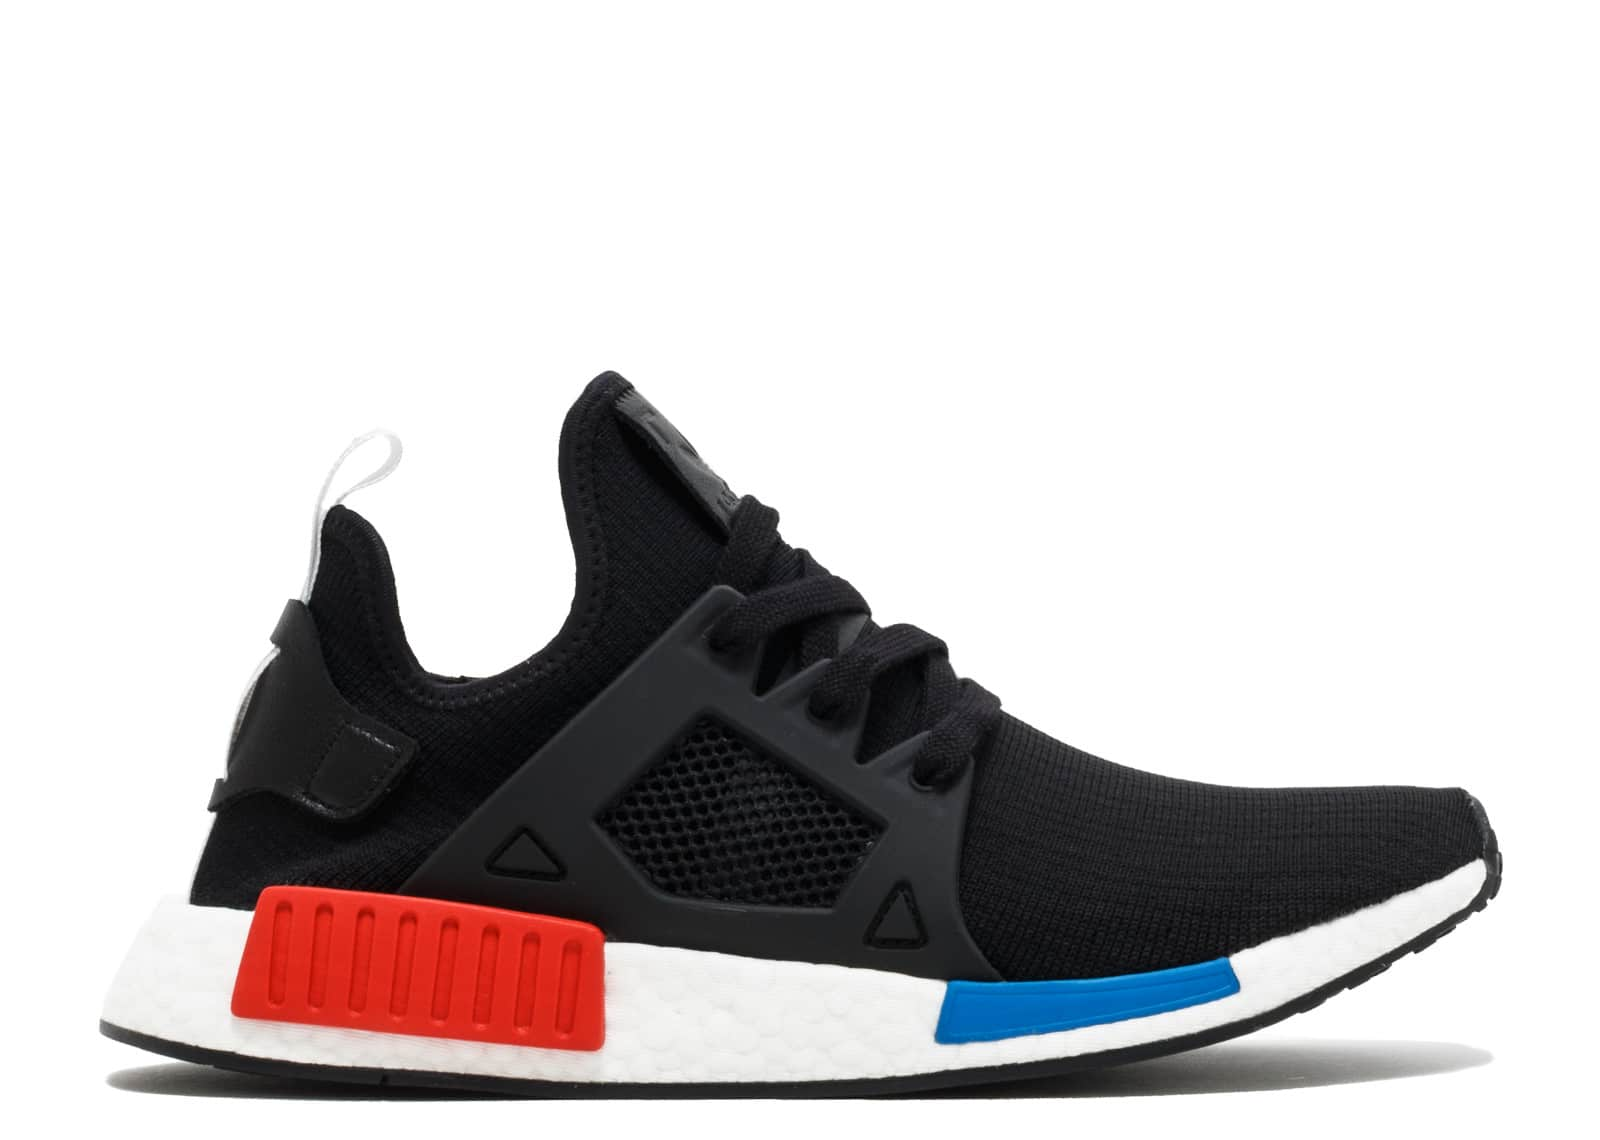 326f03ab5 adidas Originals NMD XR1 Primeknit Shoes in OG Black (SIZE 9.5 US) -  87    Amazon